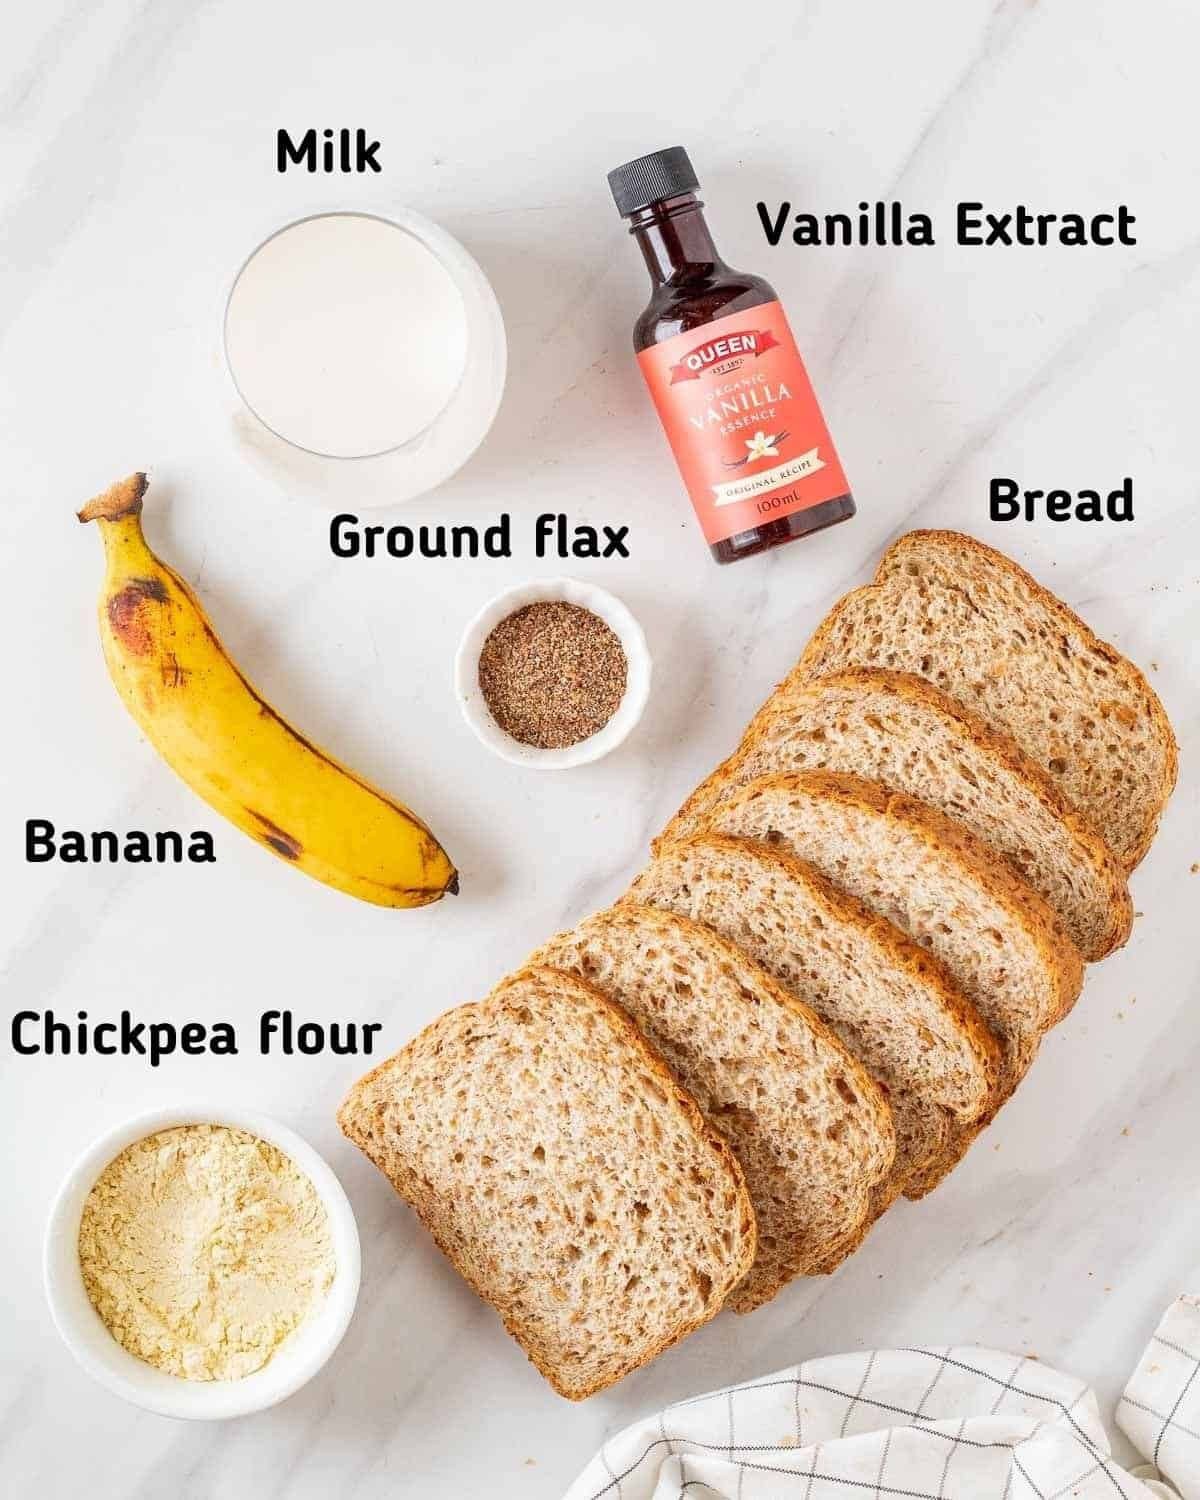 Ingredients needed to make this recipe like banana, ground flax, milk, vanilla extract, bread and chickpea flour.